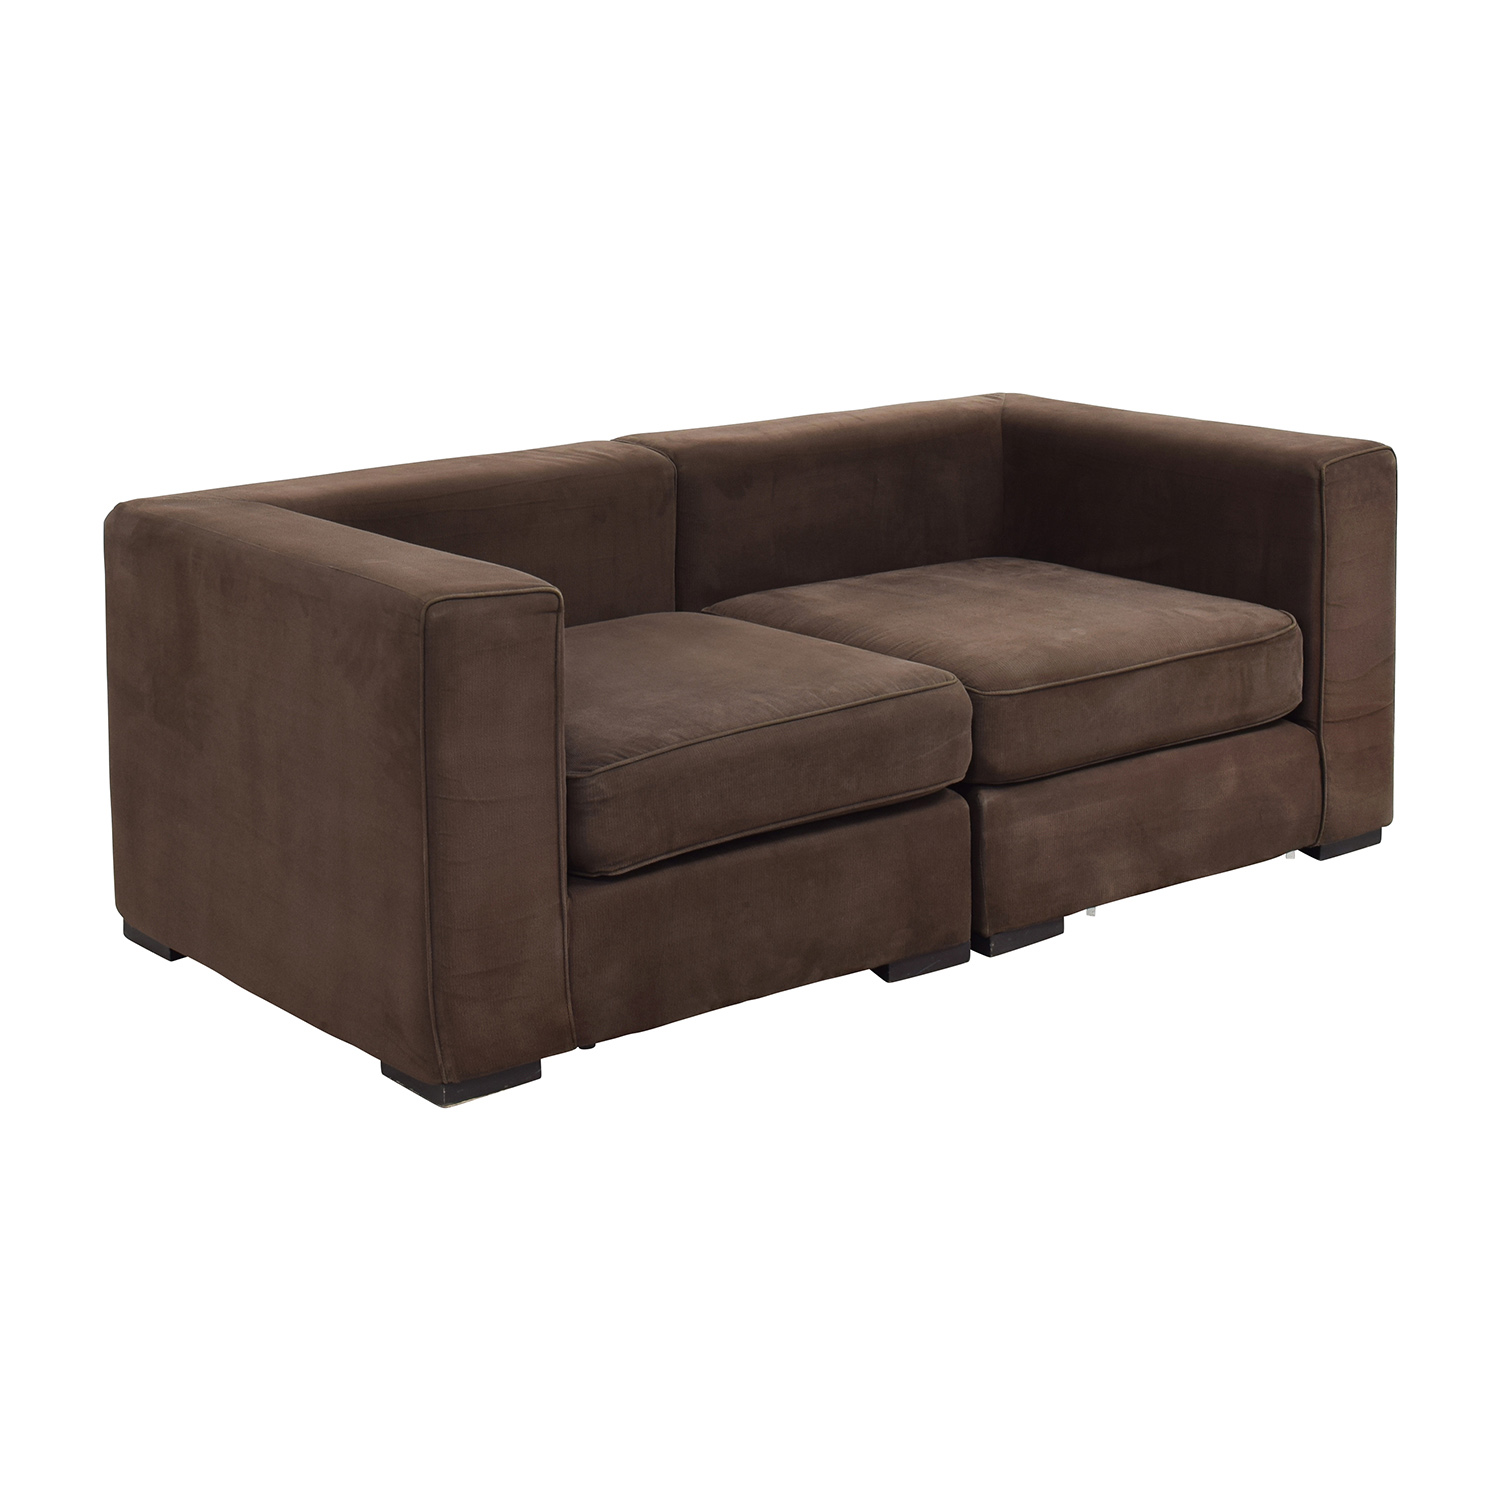 59% OFF West Elm West Elm Brown Modular Sofa Sofas